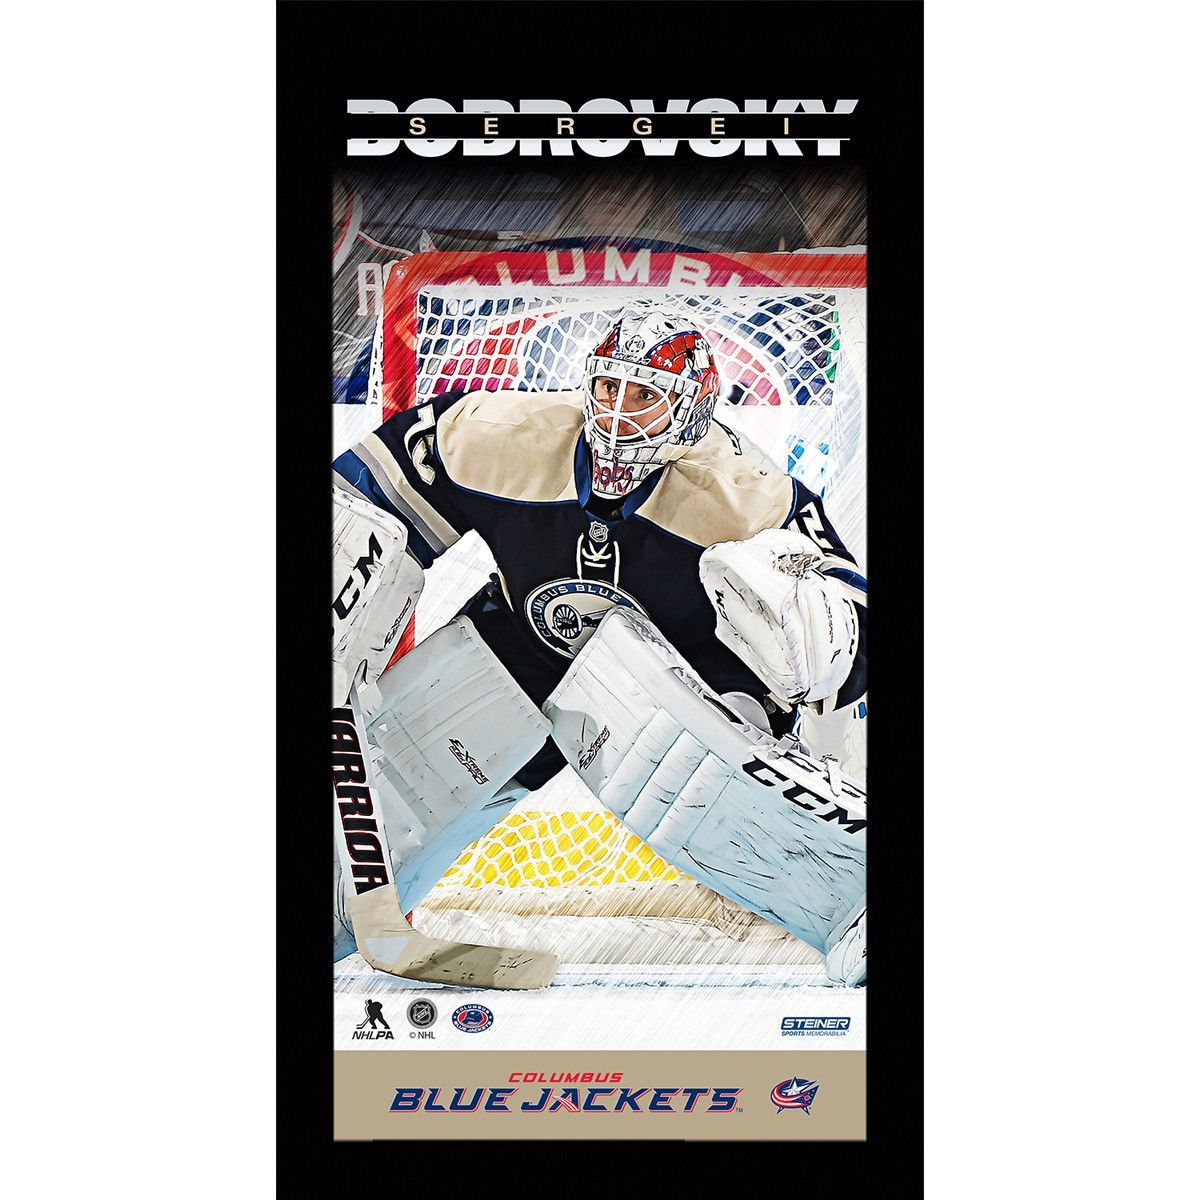 Sergei bobrovsky player profile x framed photo weights hockey